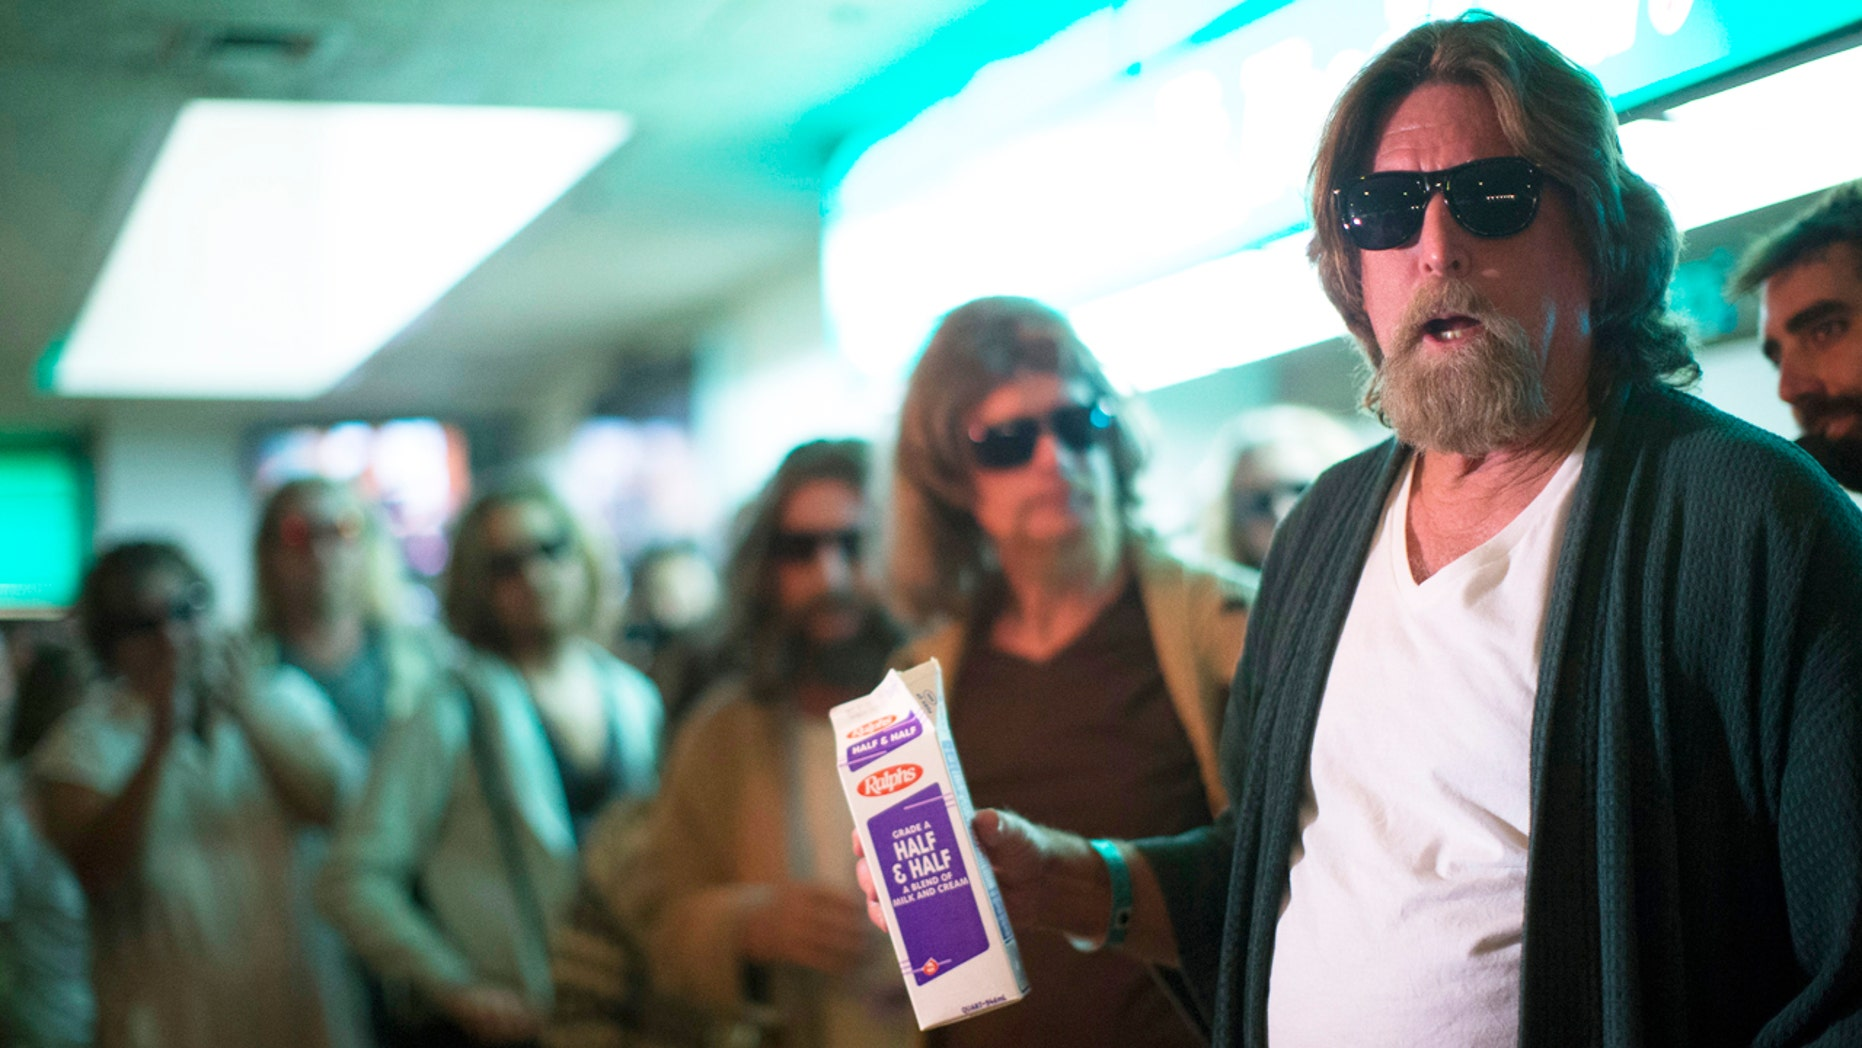 """Mike Ritto (R) and other enthusiasts wear costumes resembling characters from the movie """"The Big Lebowski"""" at the Lebowski Fest LA Bowling Party in Fountain Valley, California."""